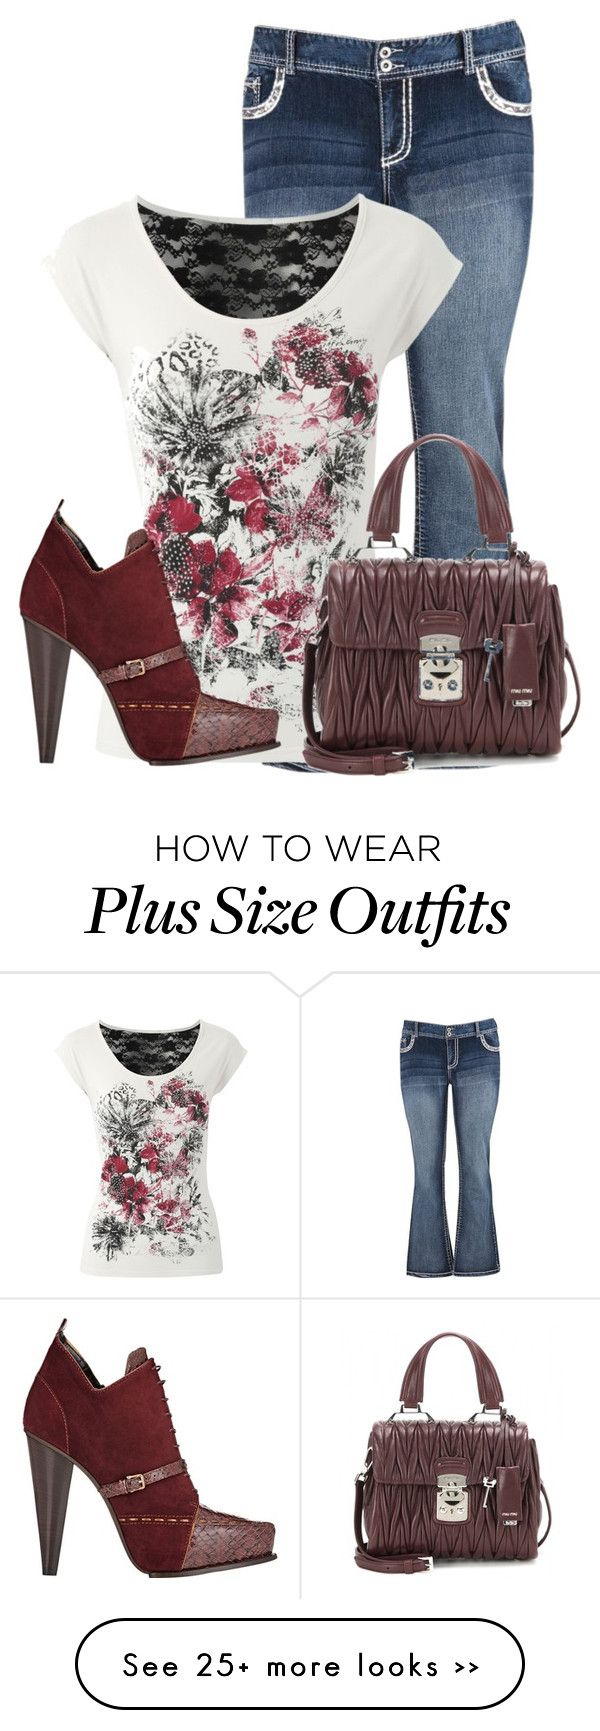 """""""Untitled #9458"""" by nanette-253 on Polyvore featuring мода, maurices, Jane Norman, Derek Lam и Miu Miu"""